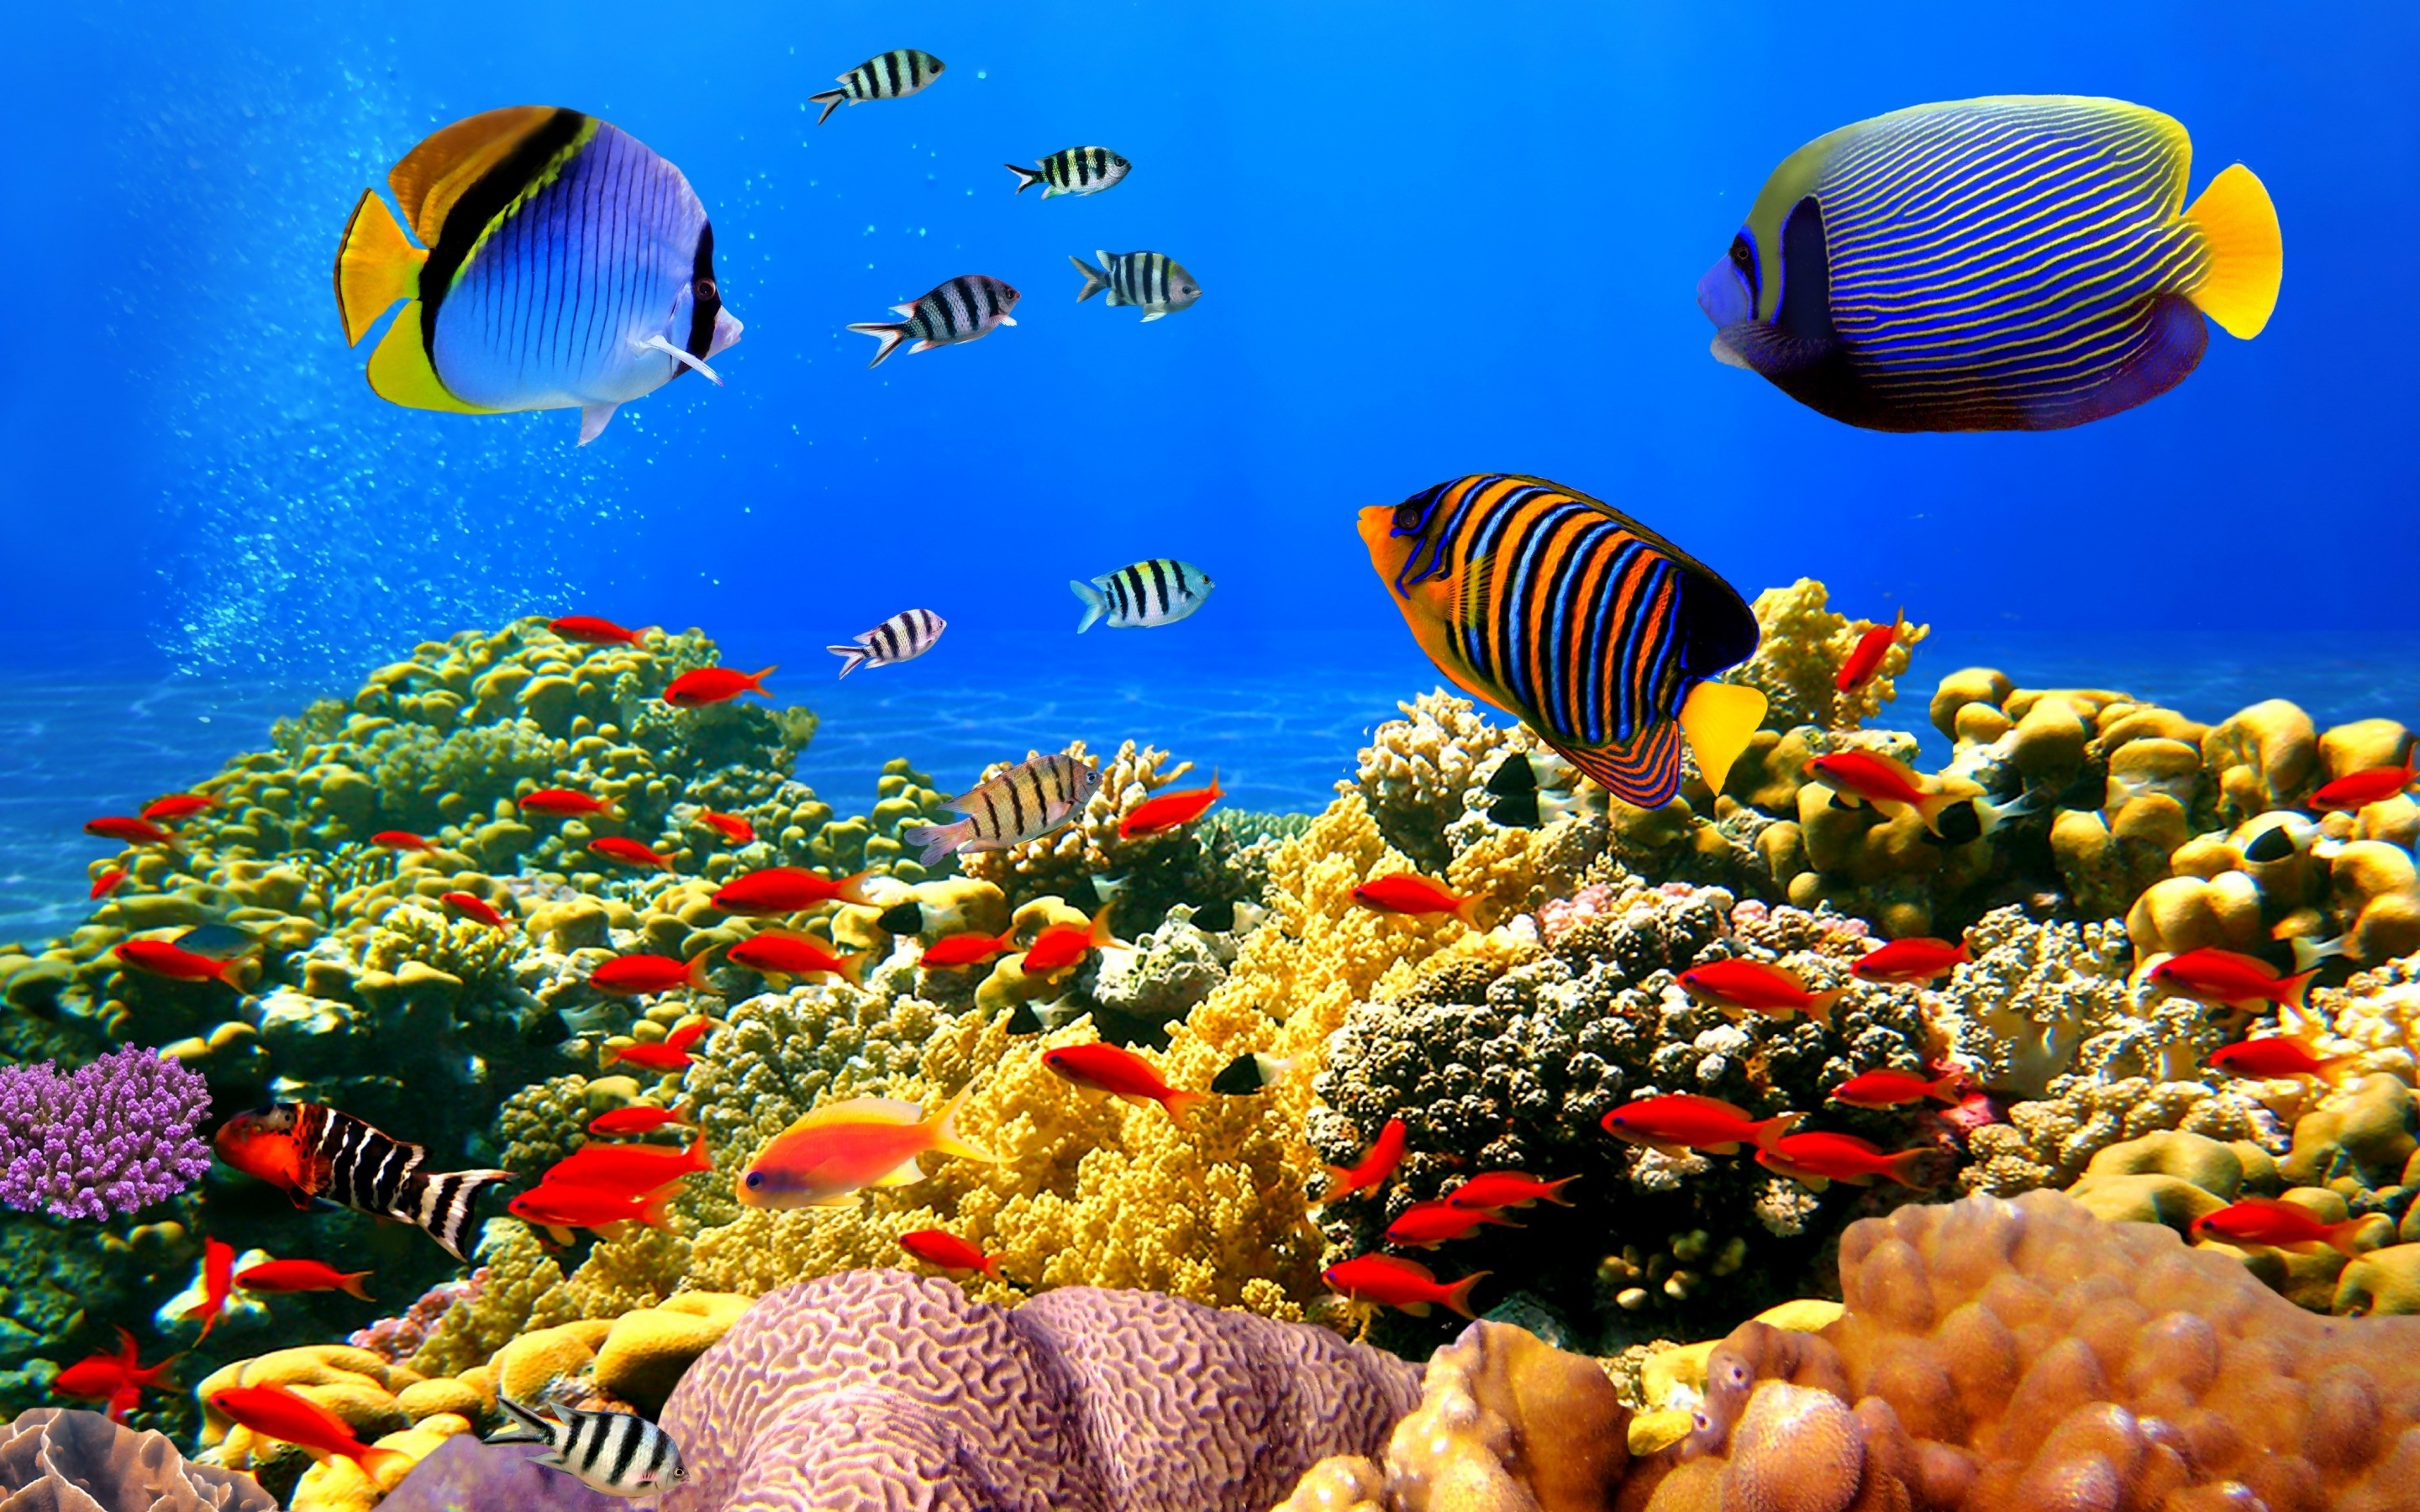 2880x1800 Colorful Coral Reef Wallpaper Desktop Background #6EZ